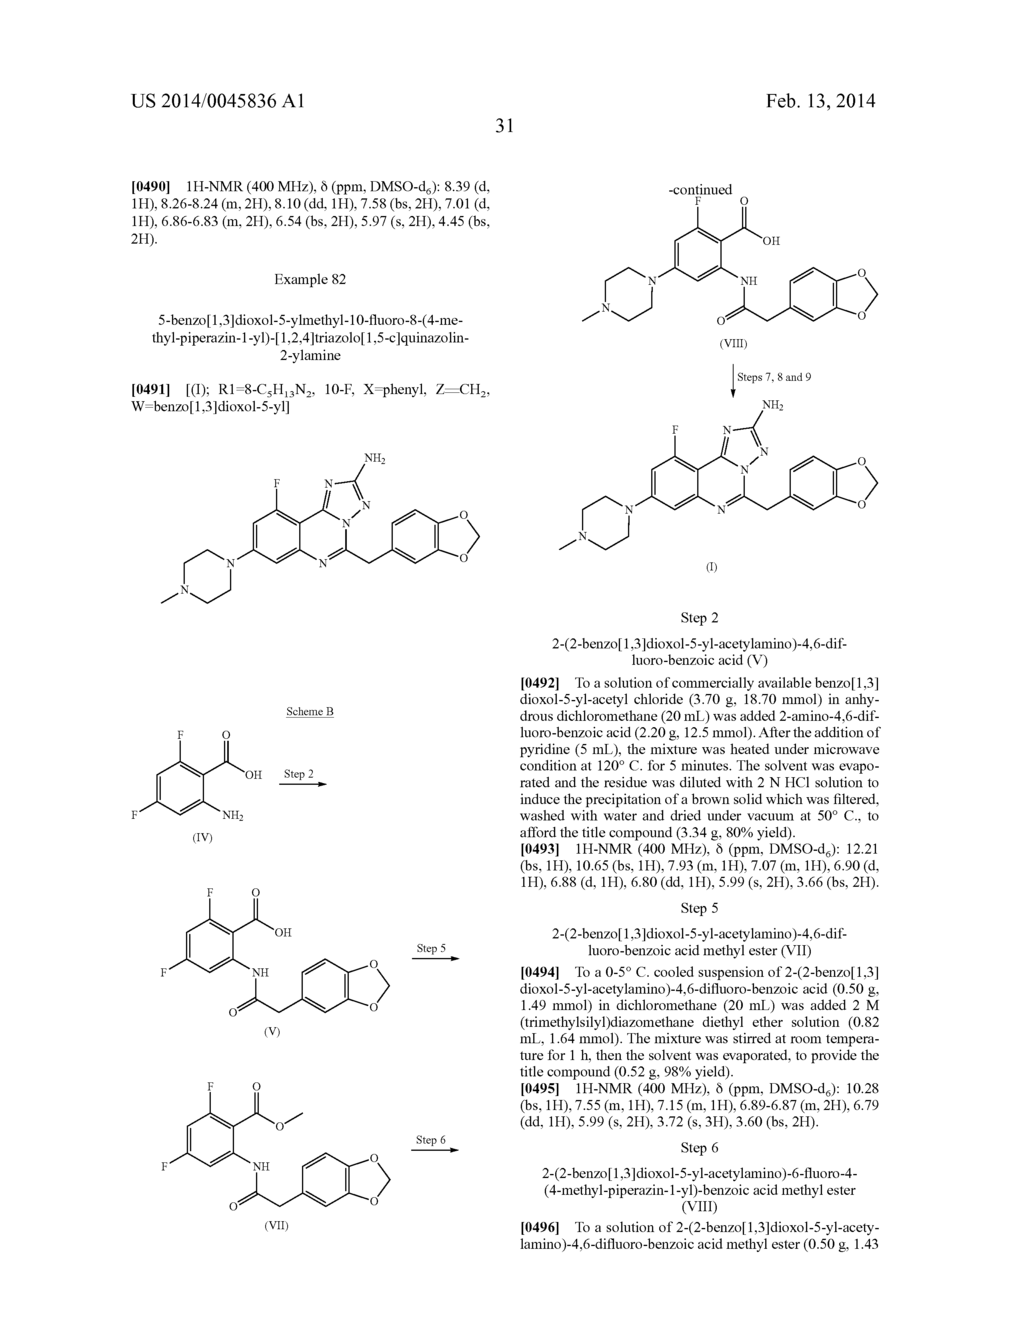 [1,2,4]TRIAZOLO[1,5-C]PYRIMIDINE DERIVATIVES AS HSP90 MODULATORS - diagram, schematic, and image 32